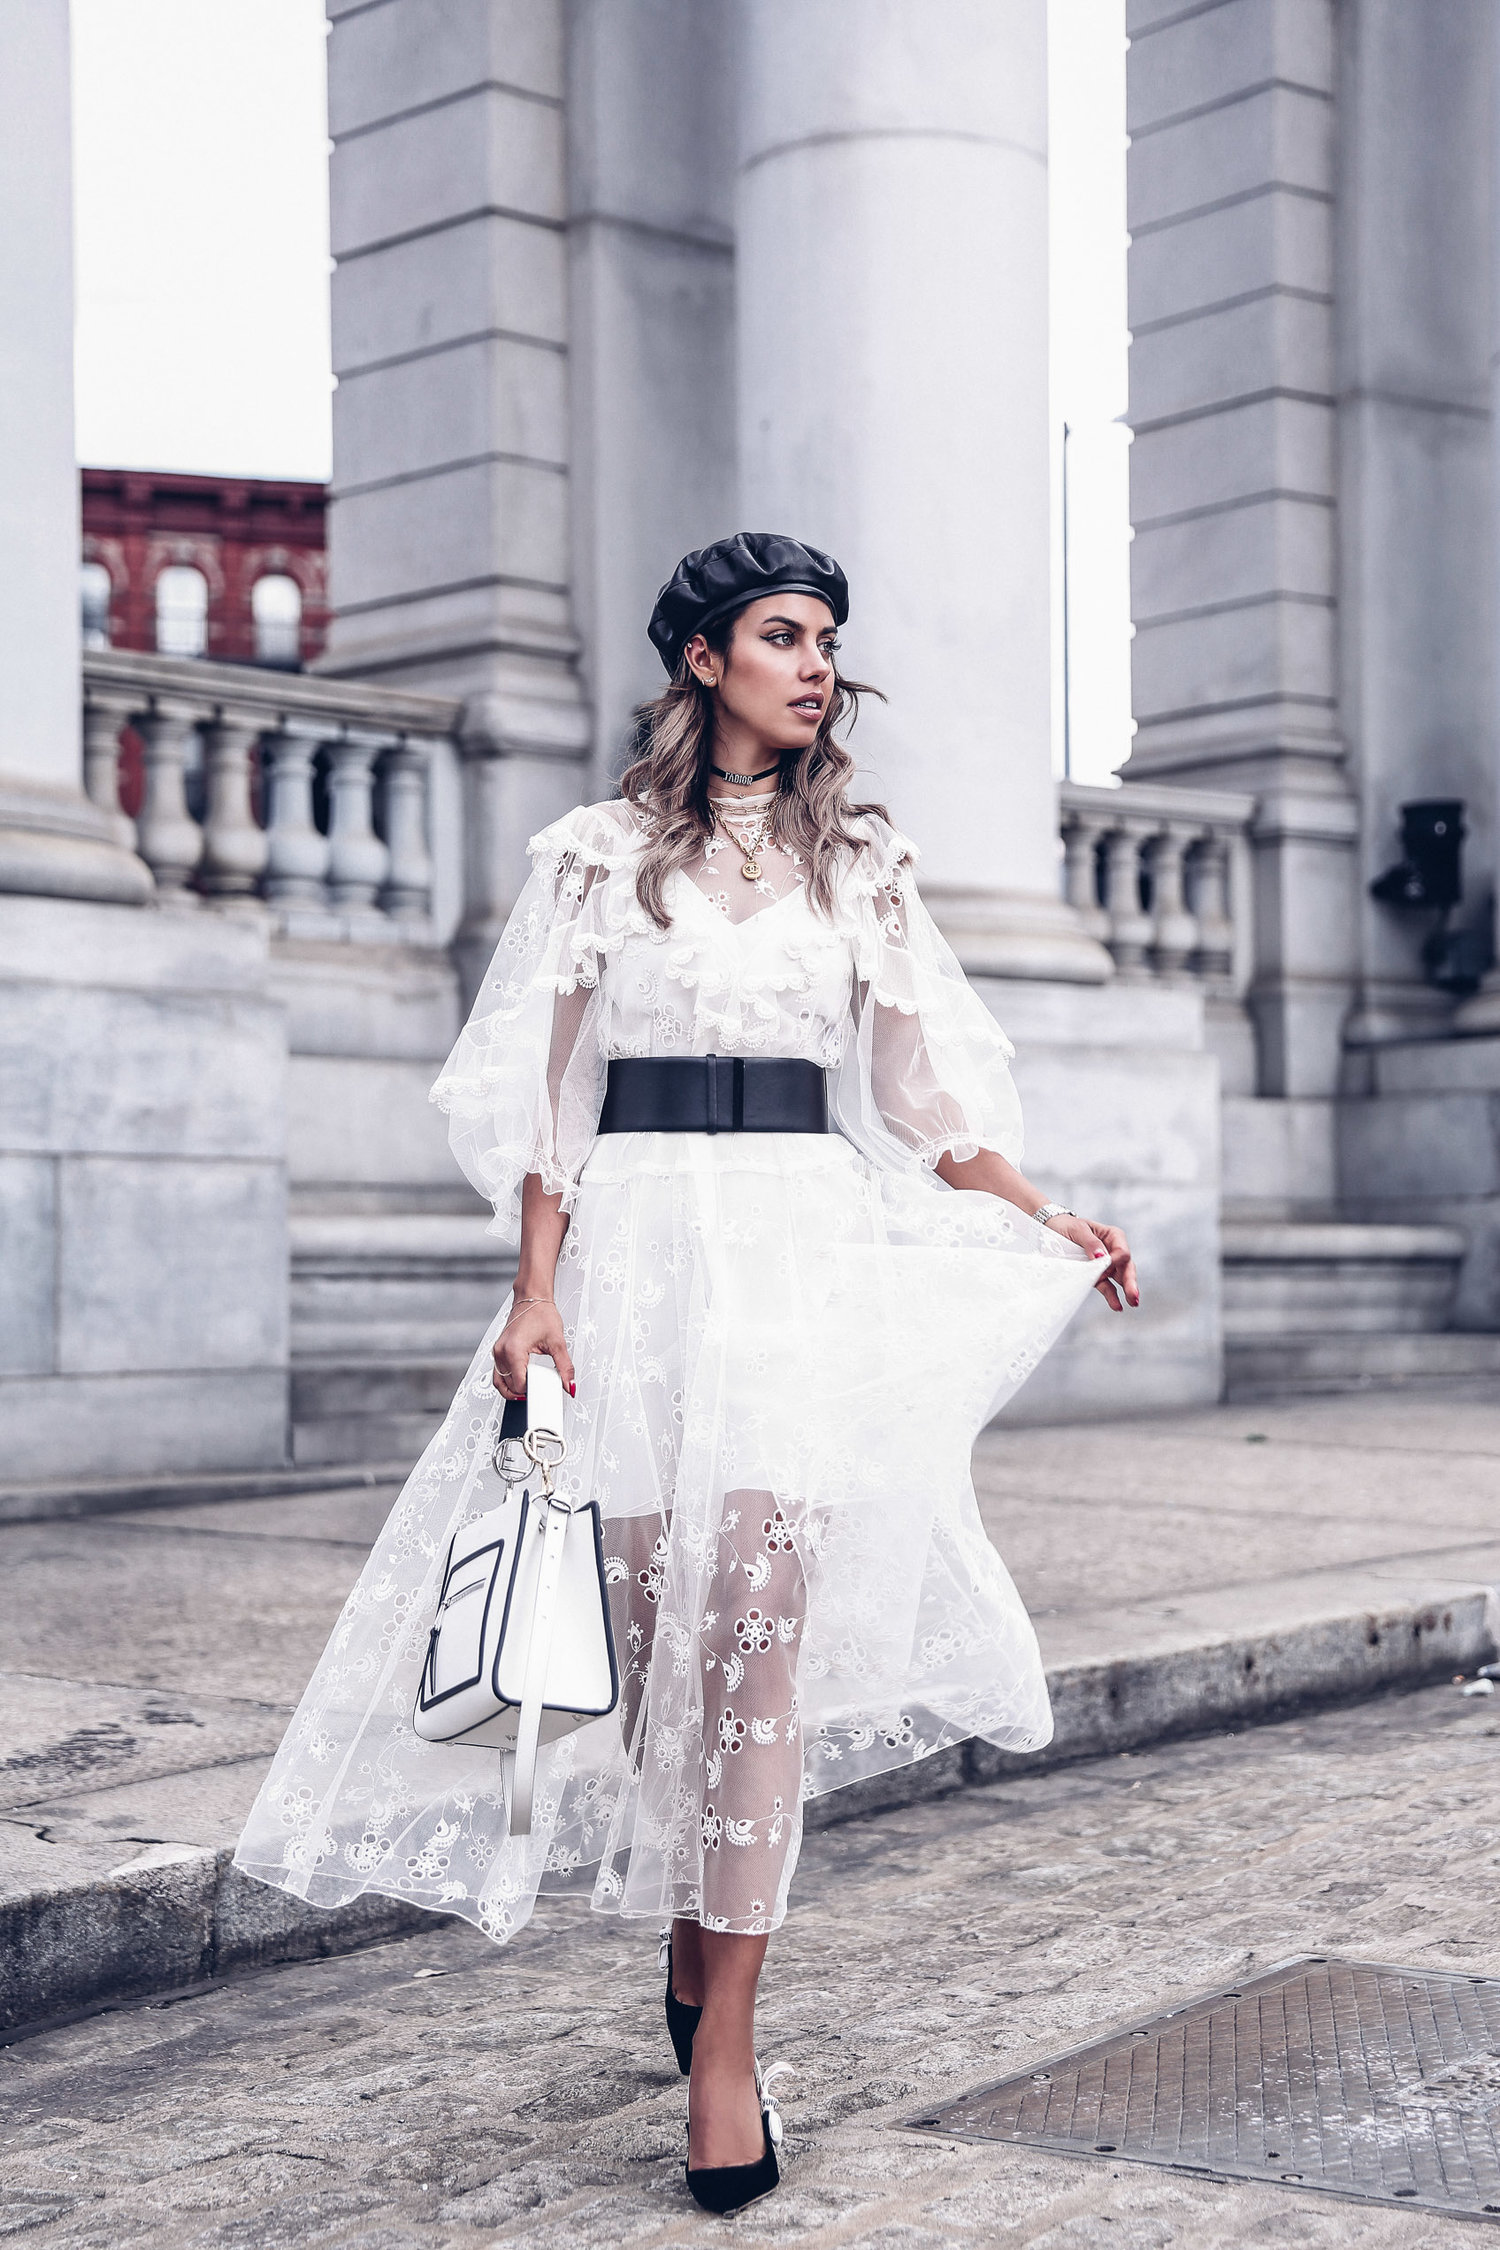 e3d85273ecd2b One of the most beautiful fashion bloggers, Anabelle Fleur , looks amazing  in this white